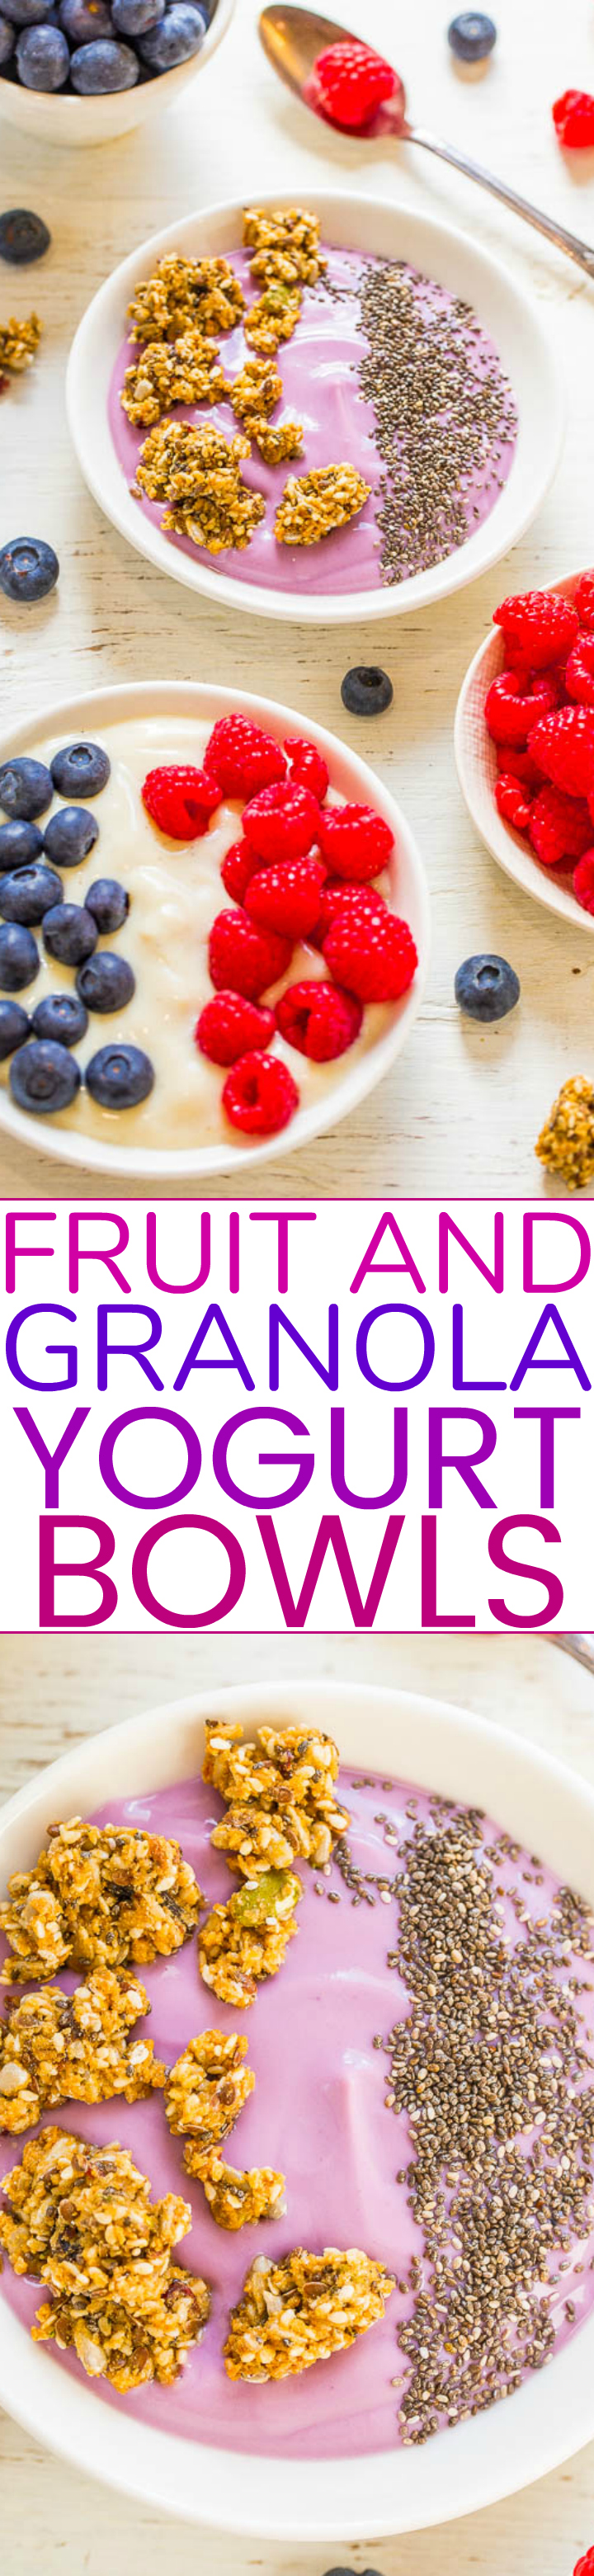 Fruit and Granola Yogurt Bowls - Get ready for the BEST tasting vegan yogurt topped with fresh fruit, granola, chia seeds, and more!! So much YUMMIER than a piece of toast for breakfast!!